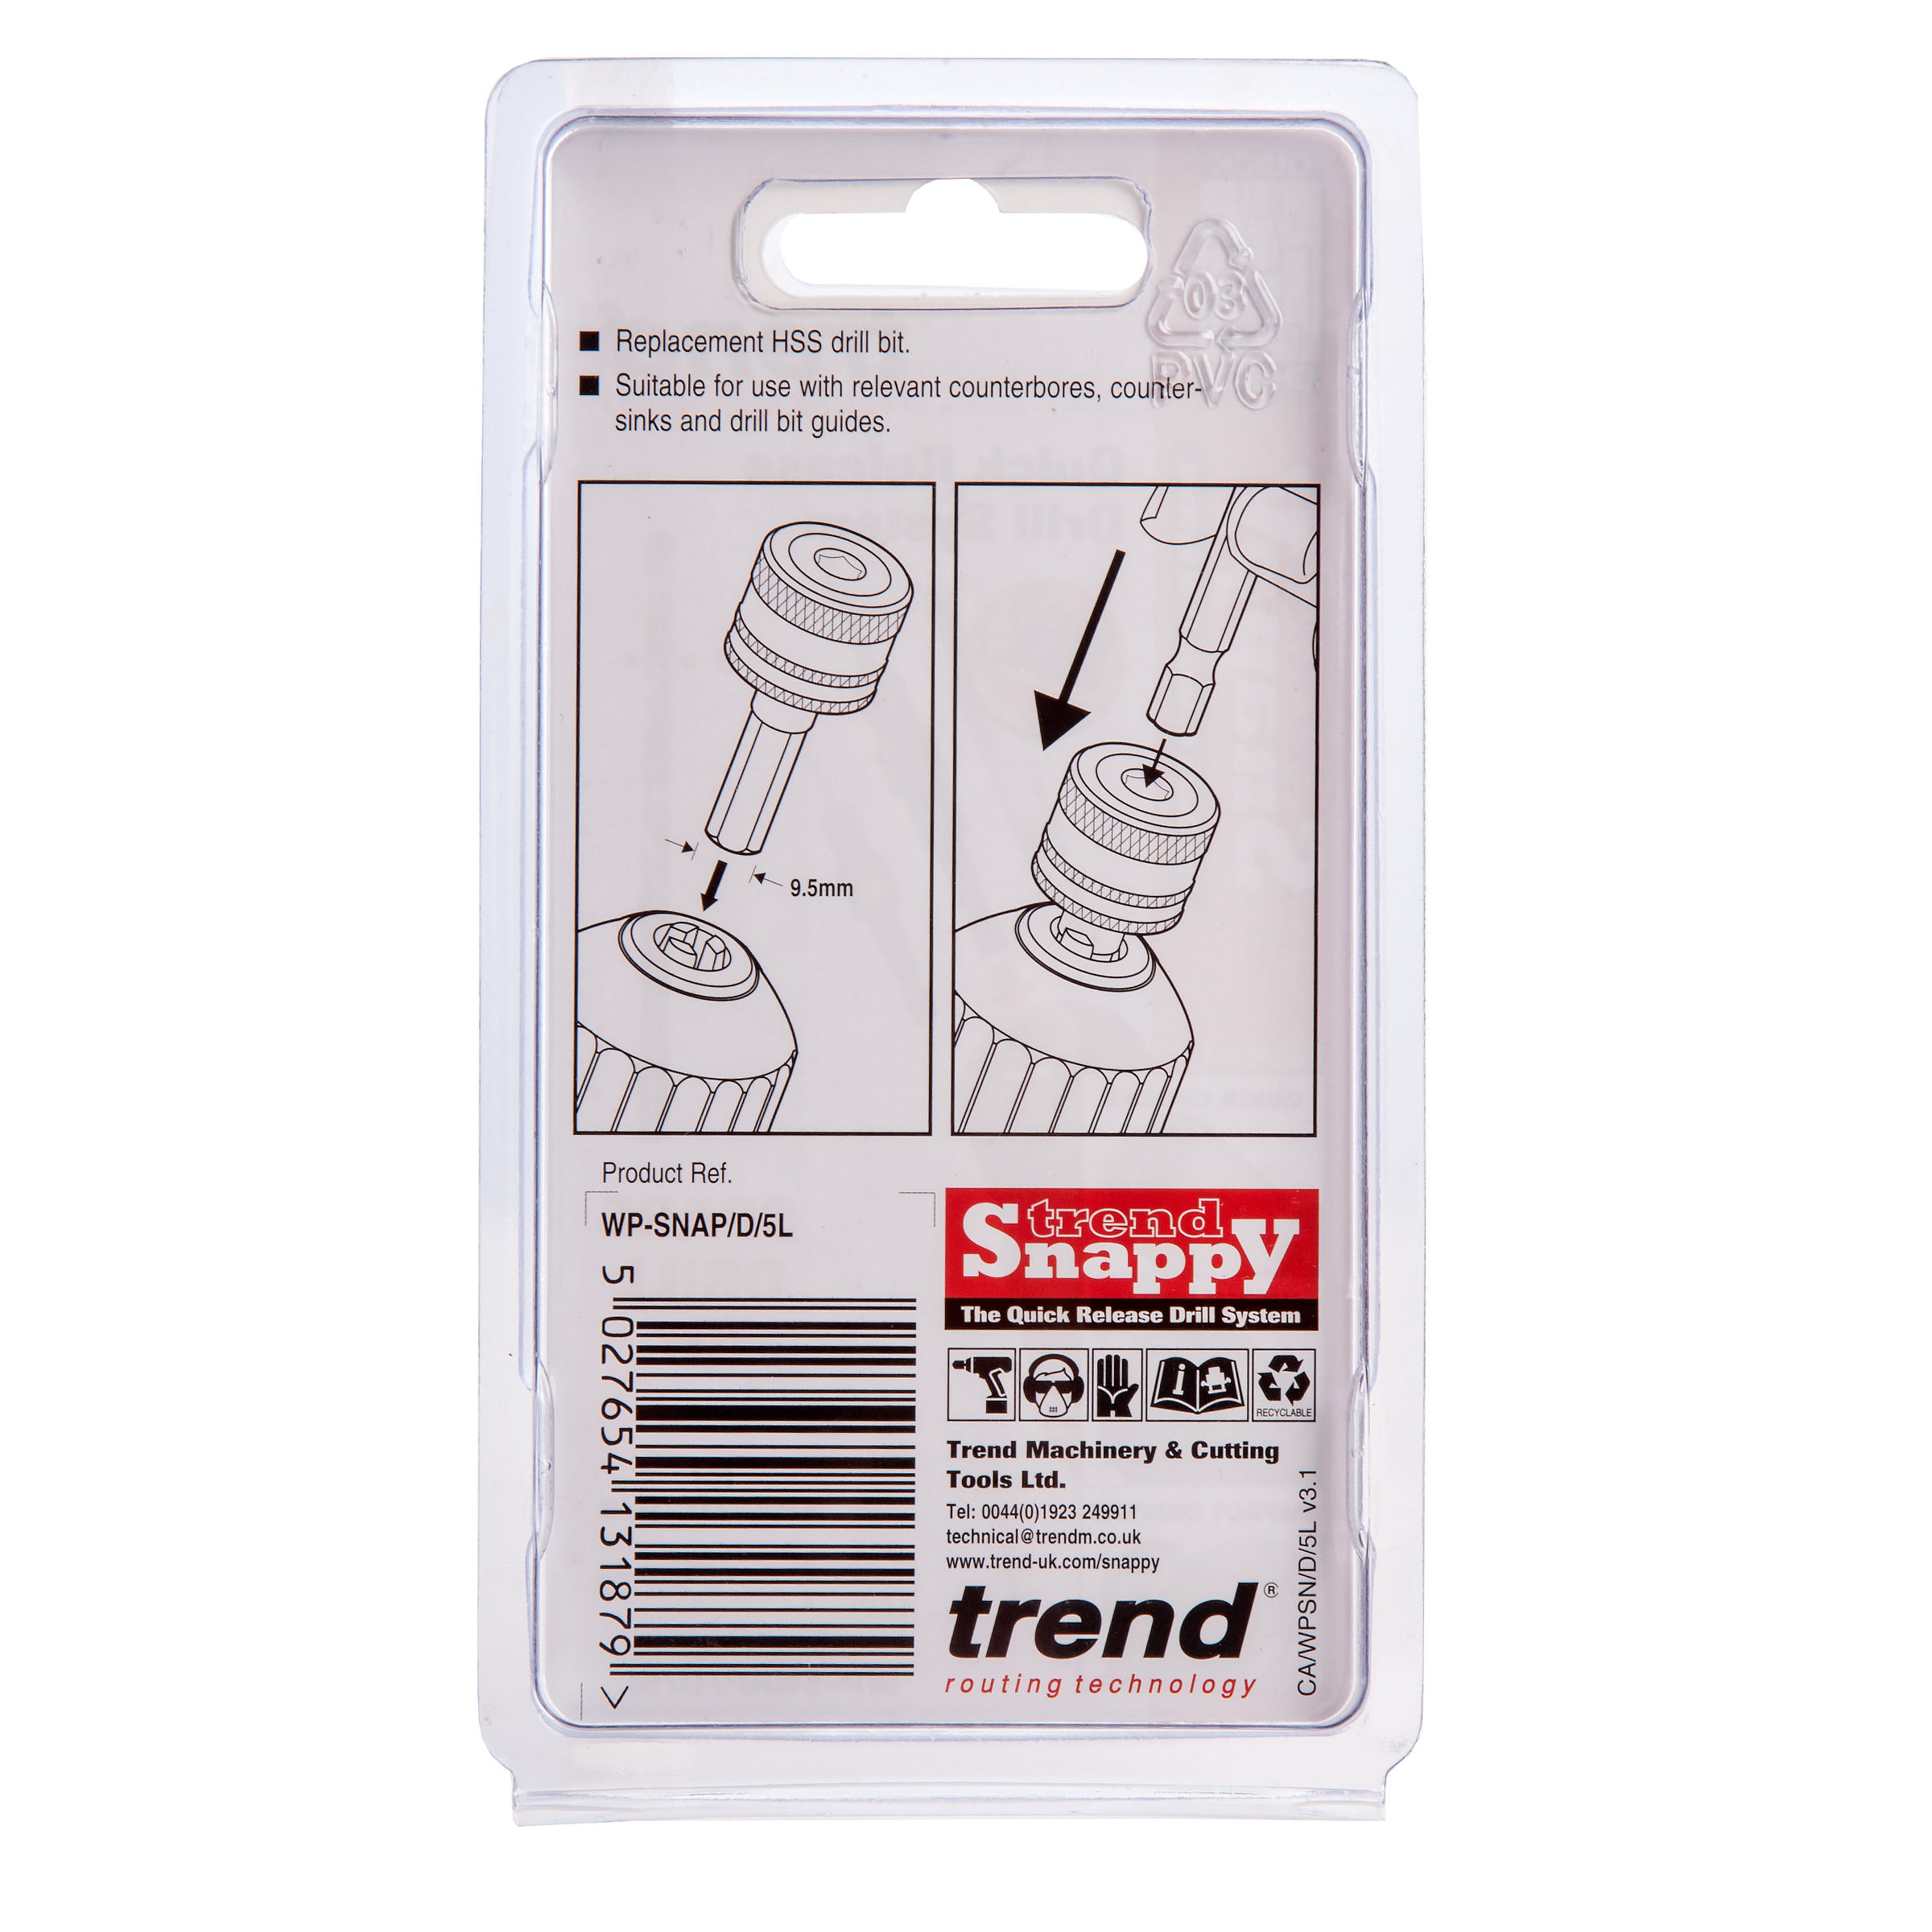 Trend Wp Snap D 5l Sny 5 64 Inch 2 0